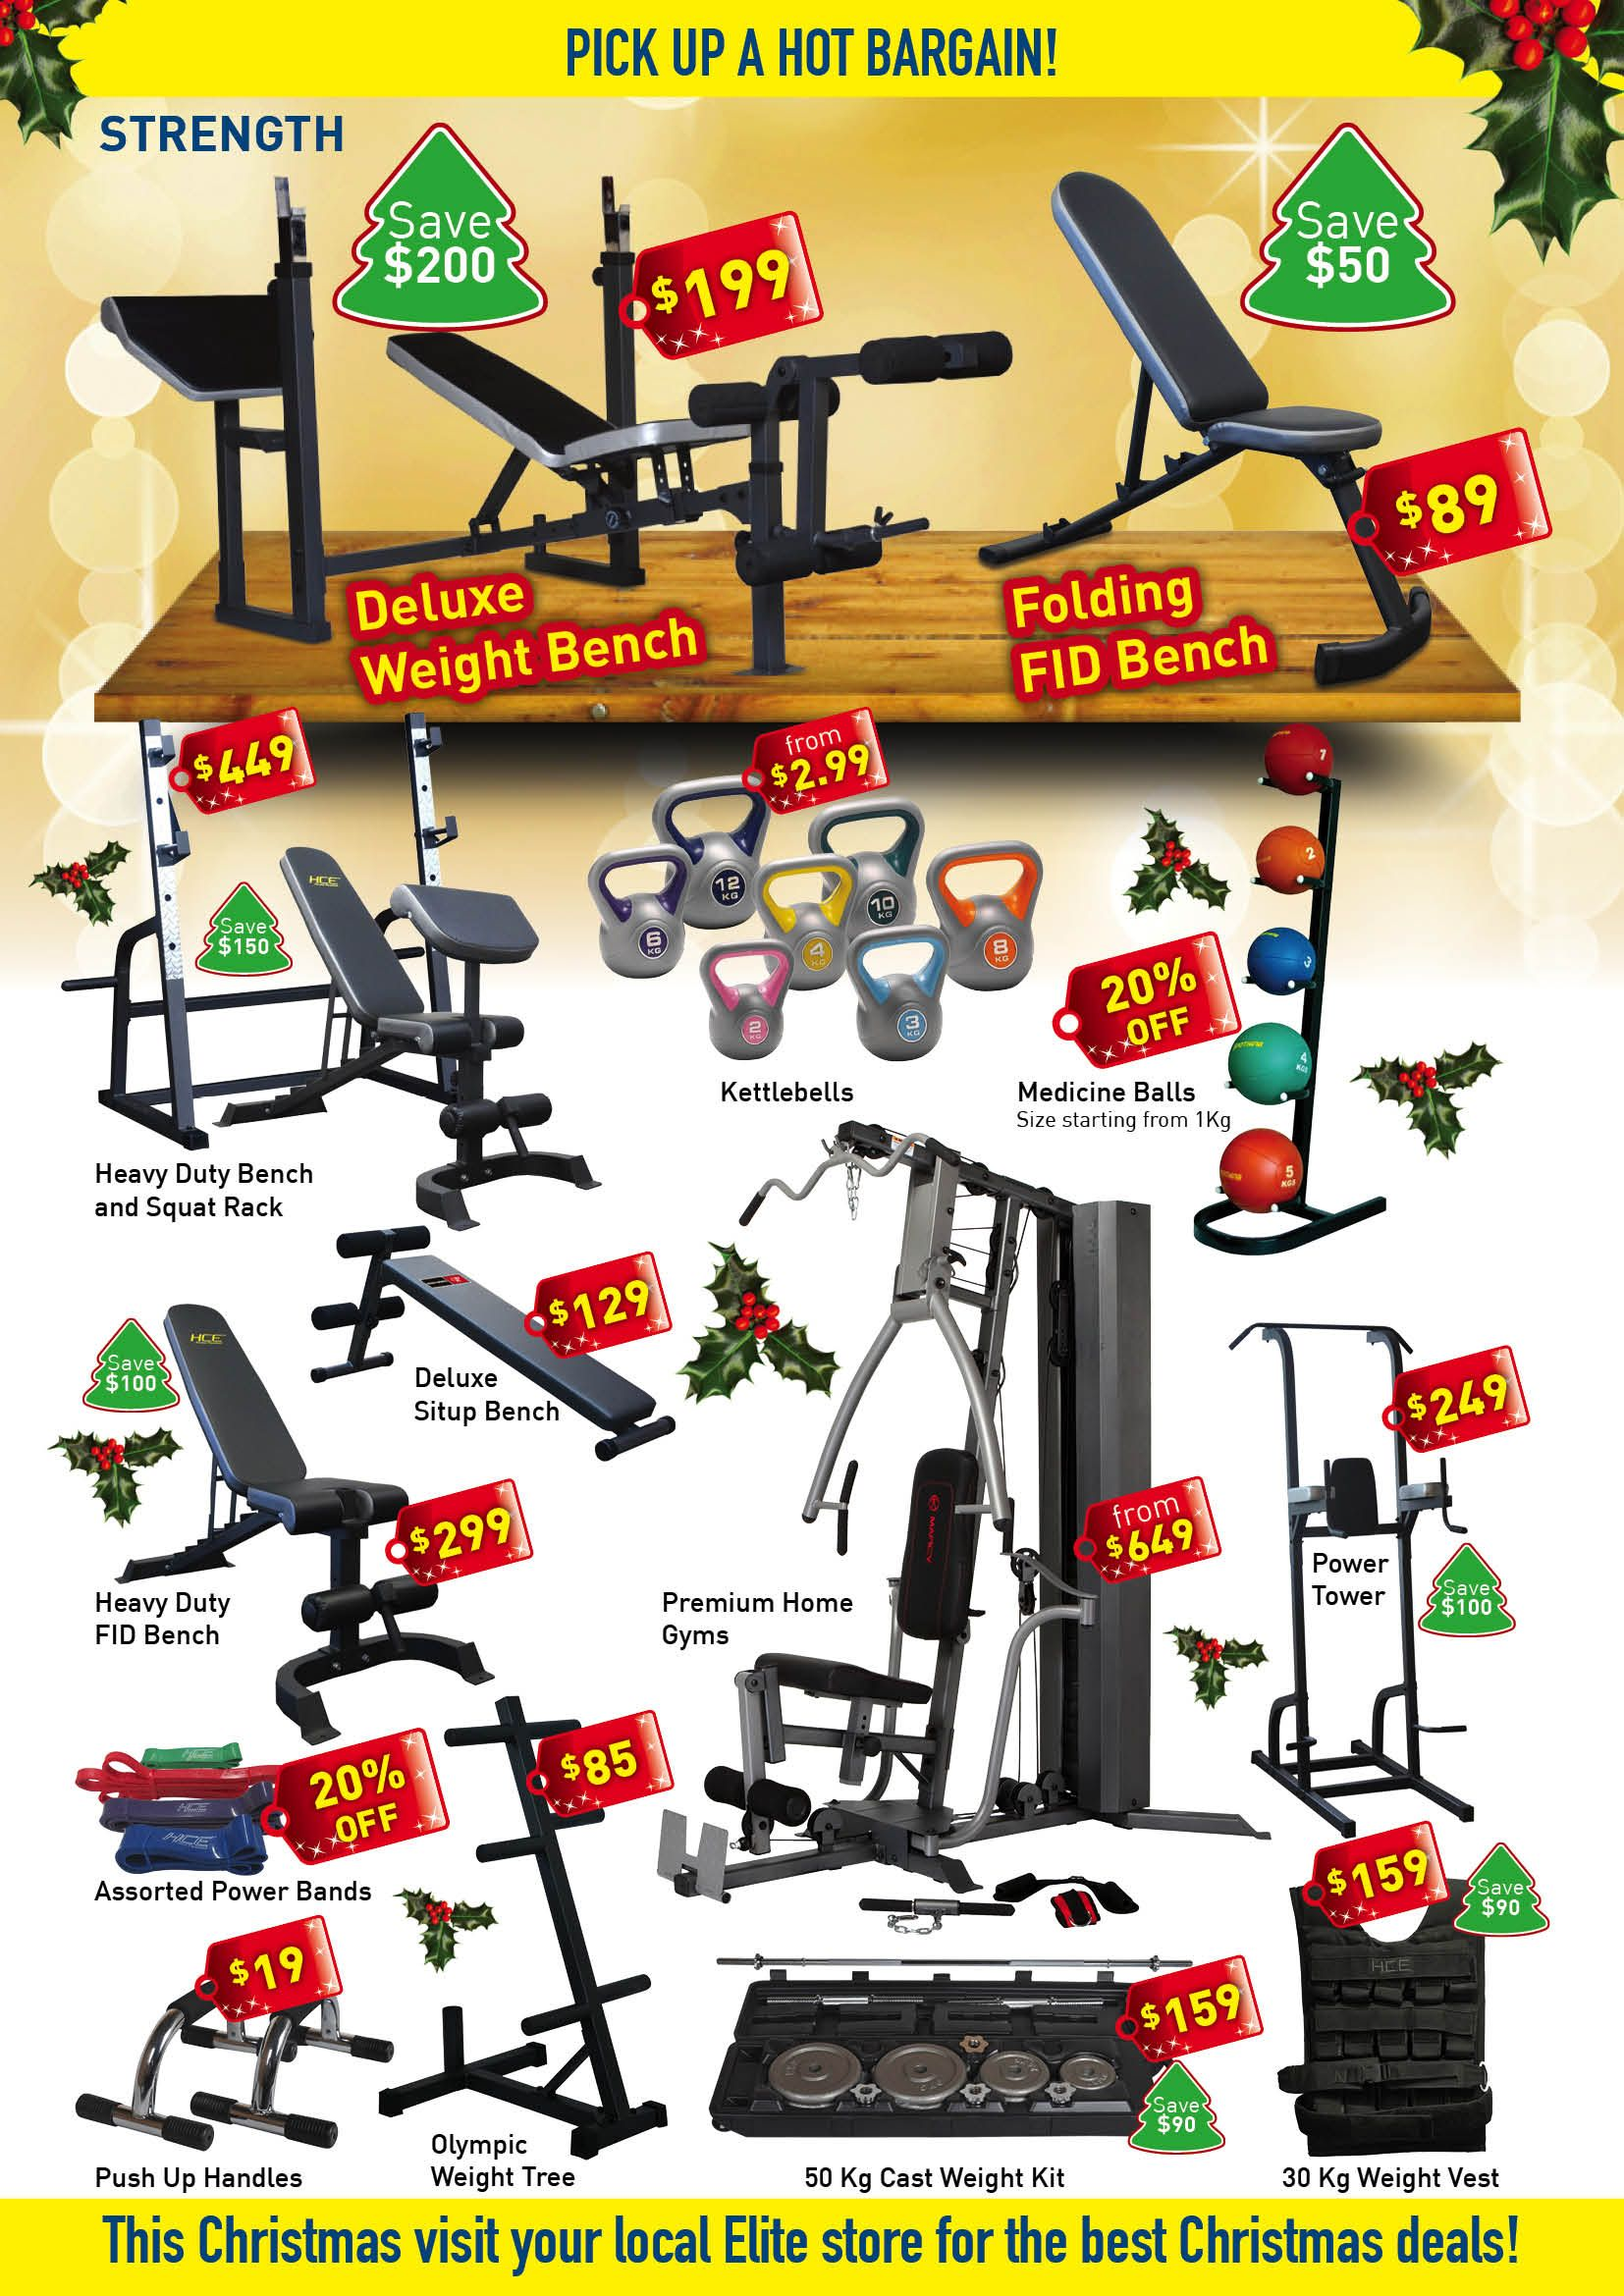 Gym Equipment Christmas Sale Fitness Equipment Gift Ideas For Christmas Weight Bench Home Gym Weight Benches At Home Gym No Equipment Workout